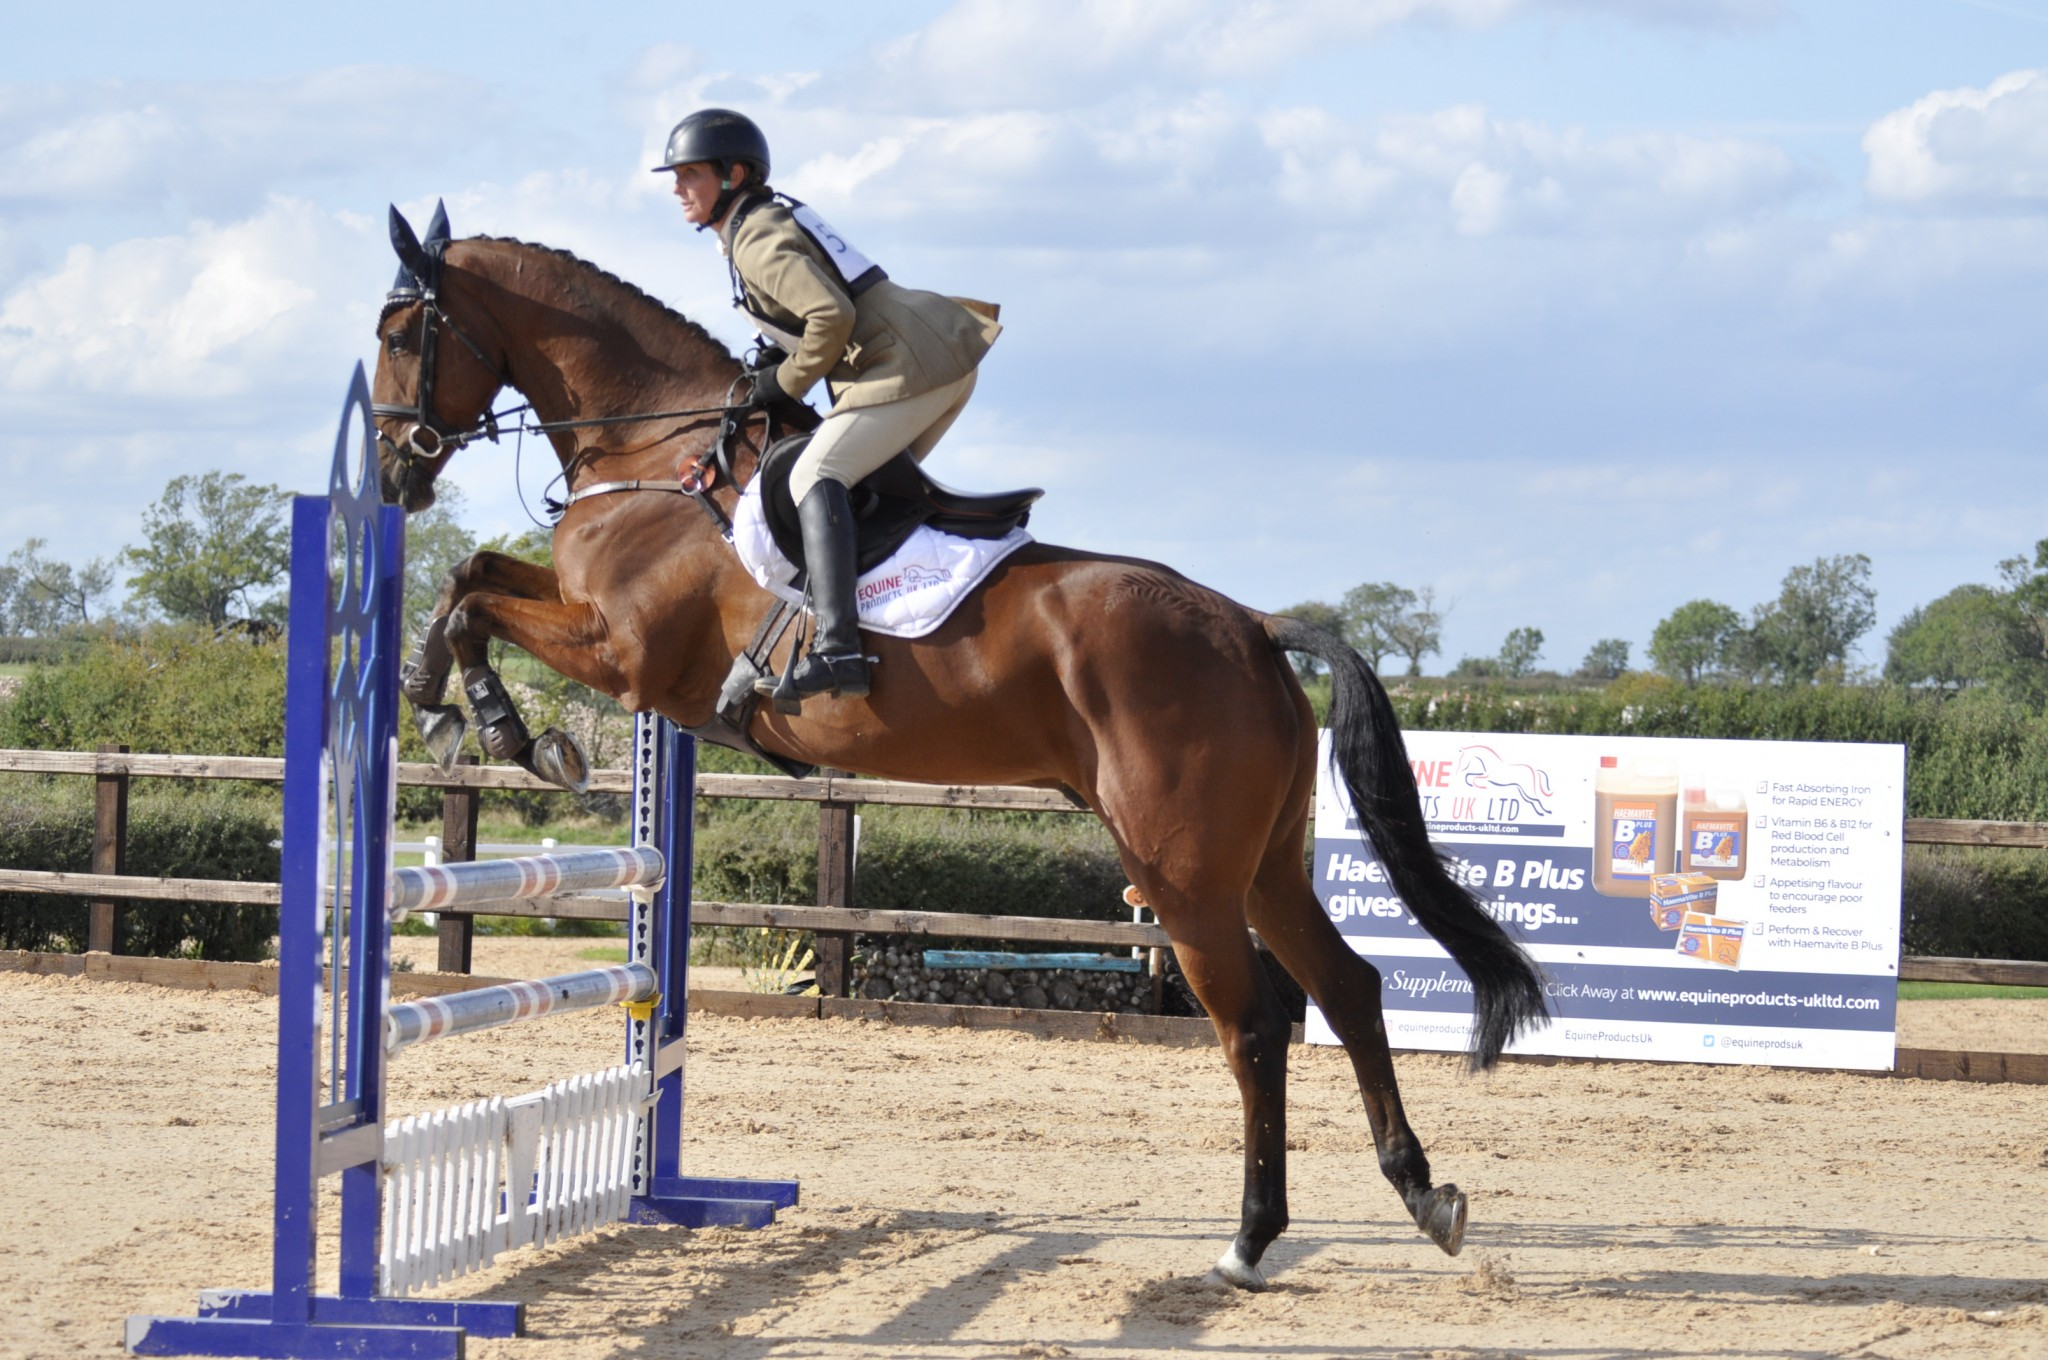 Sponsored rider Caroline Powell jumping at Vale View - Equine Products UK celebrates 40 years of supporting horse owners and trainers around the world